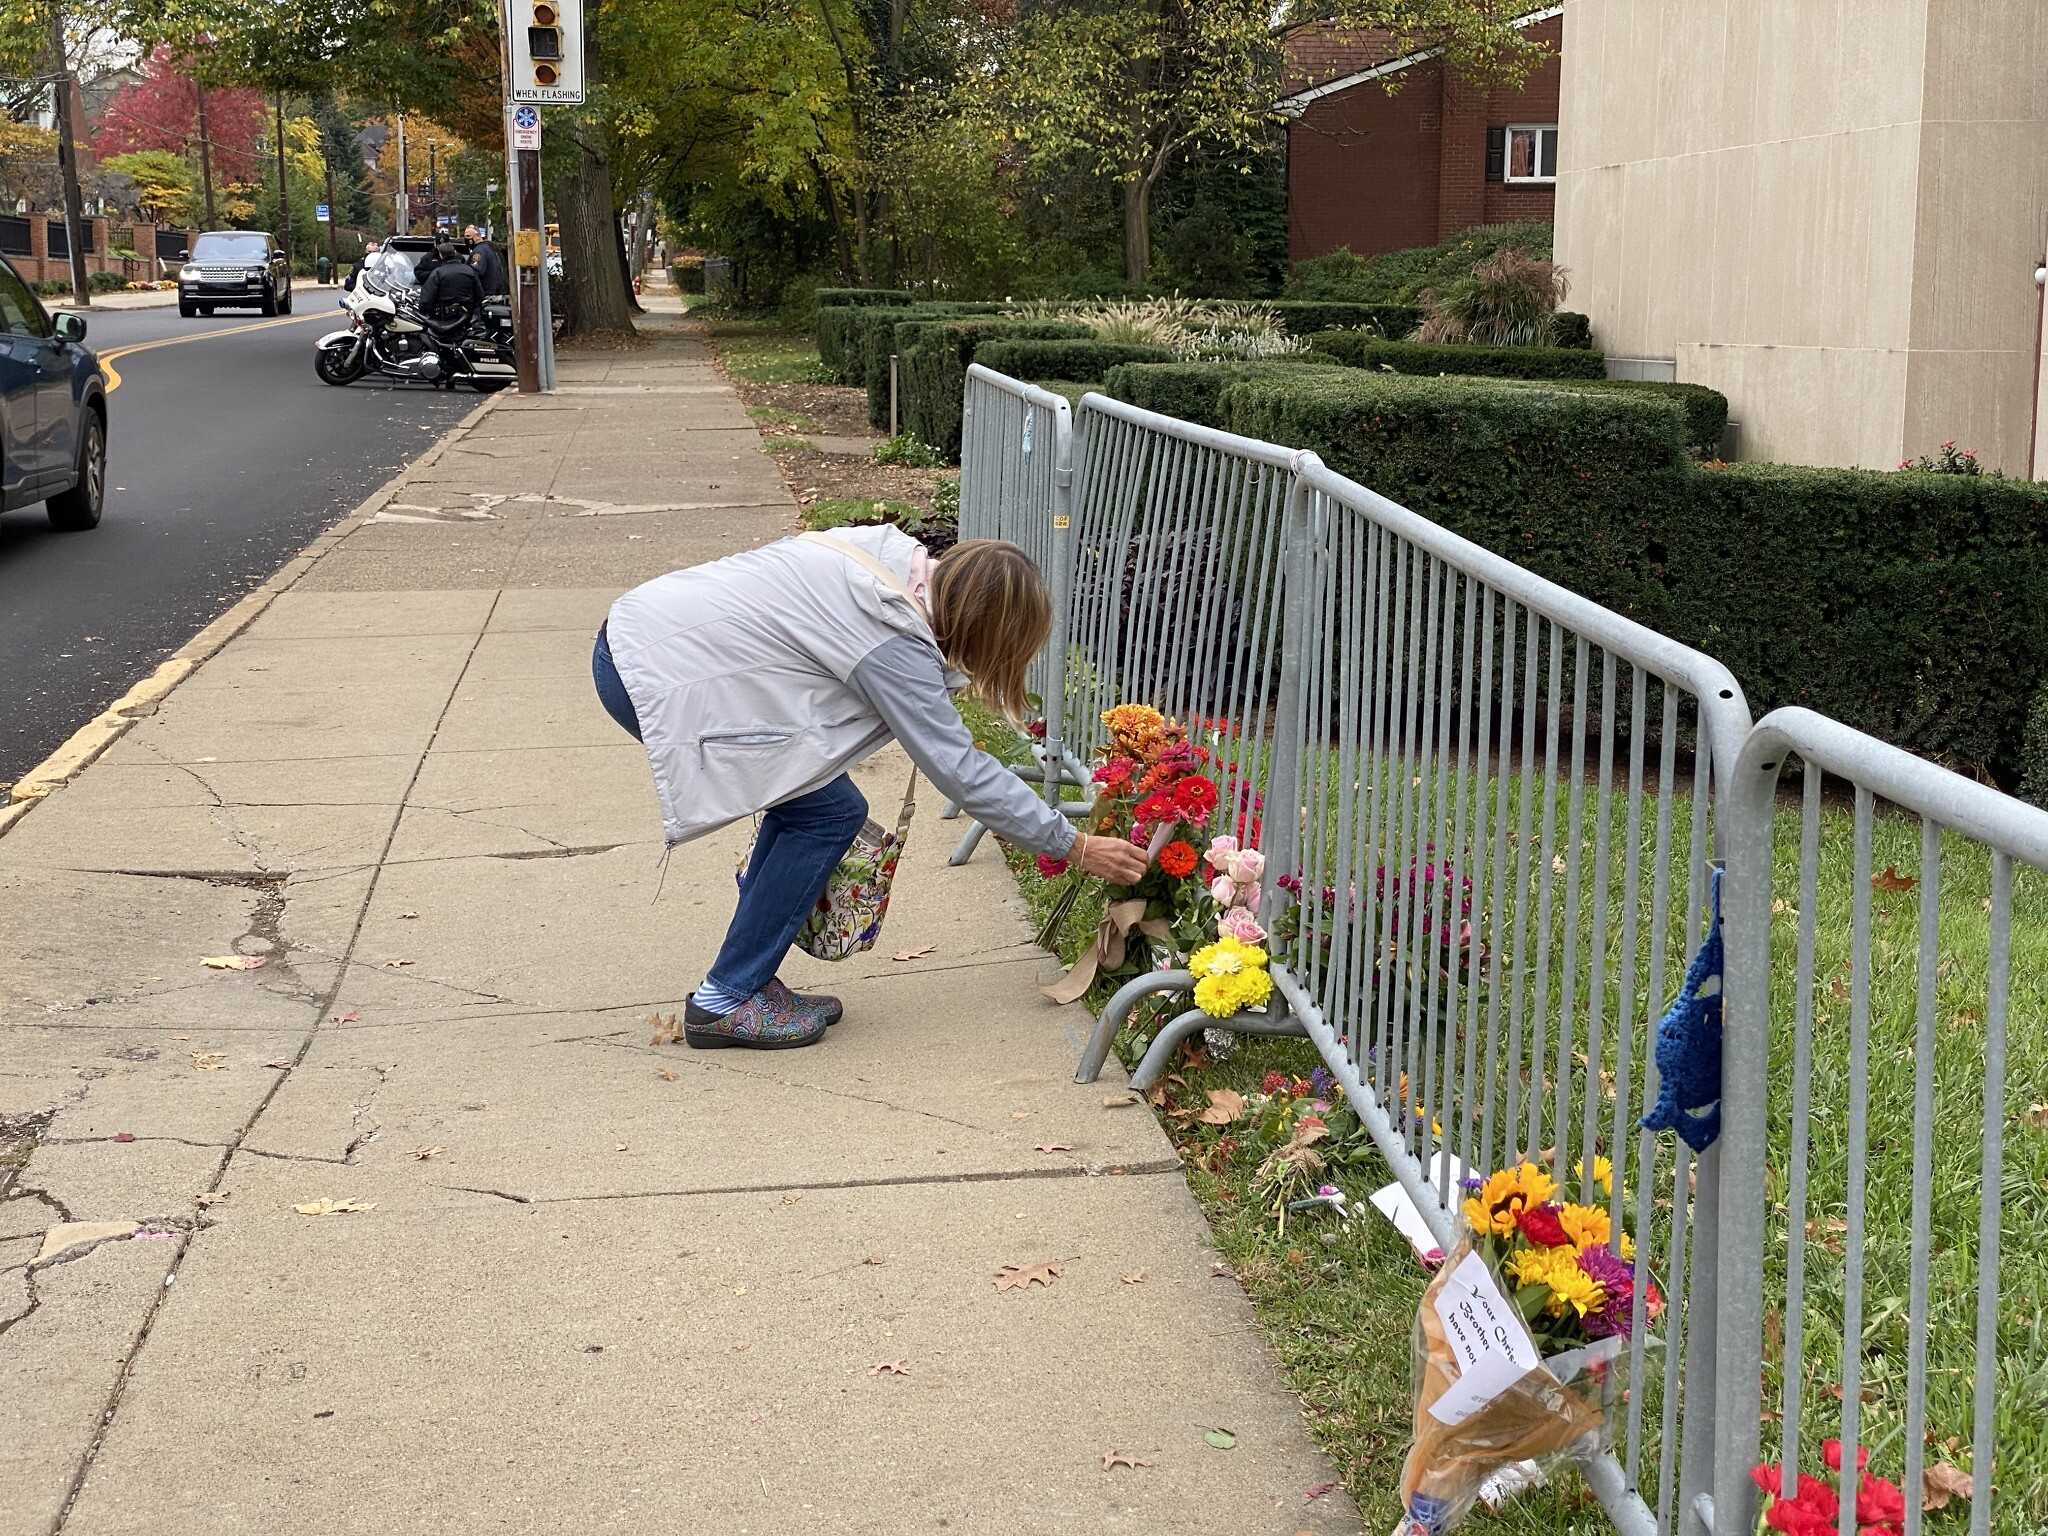 Person pauses to read a handwritten note left by the fence barricade outside the Tree of Life building. Photo by Jim Busis